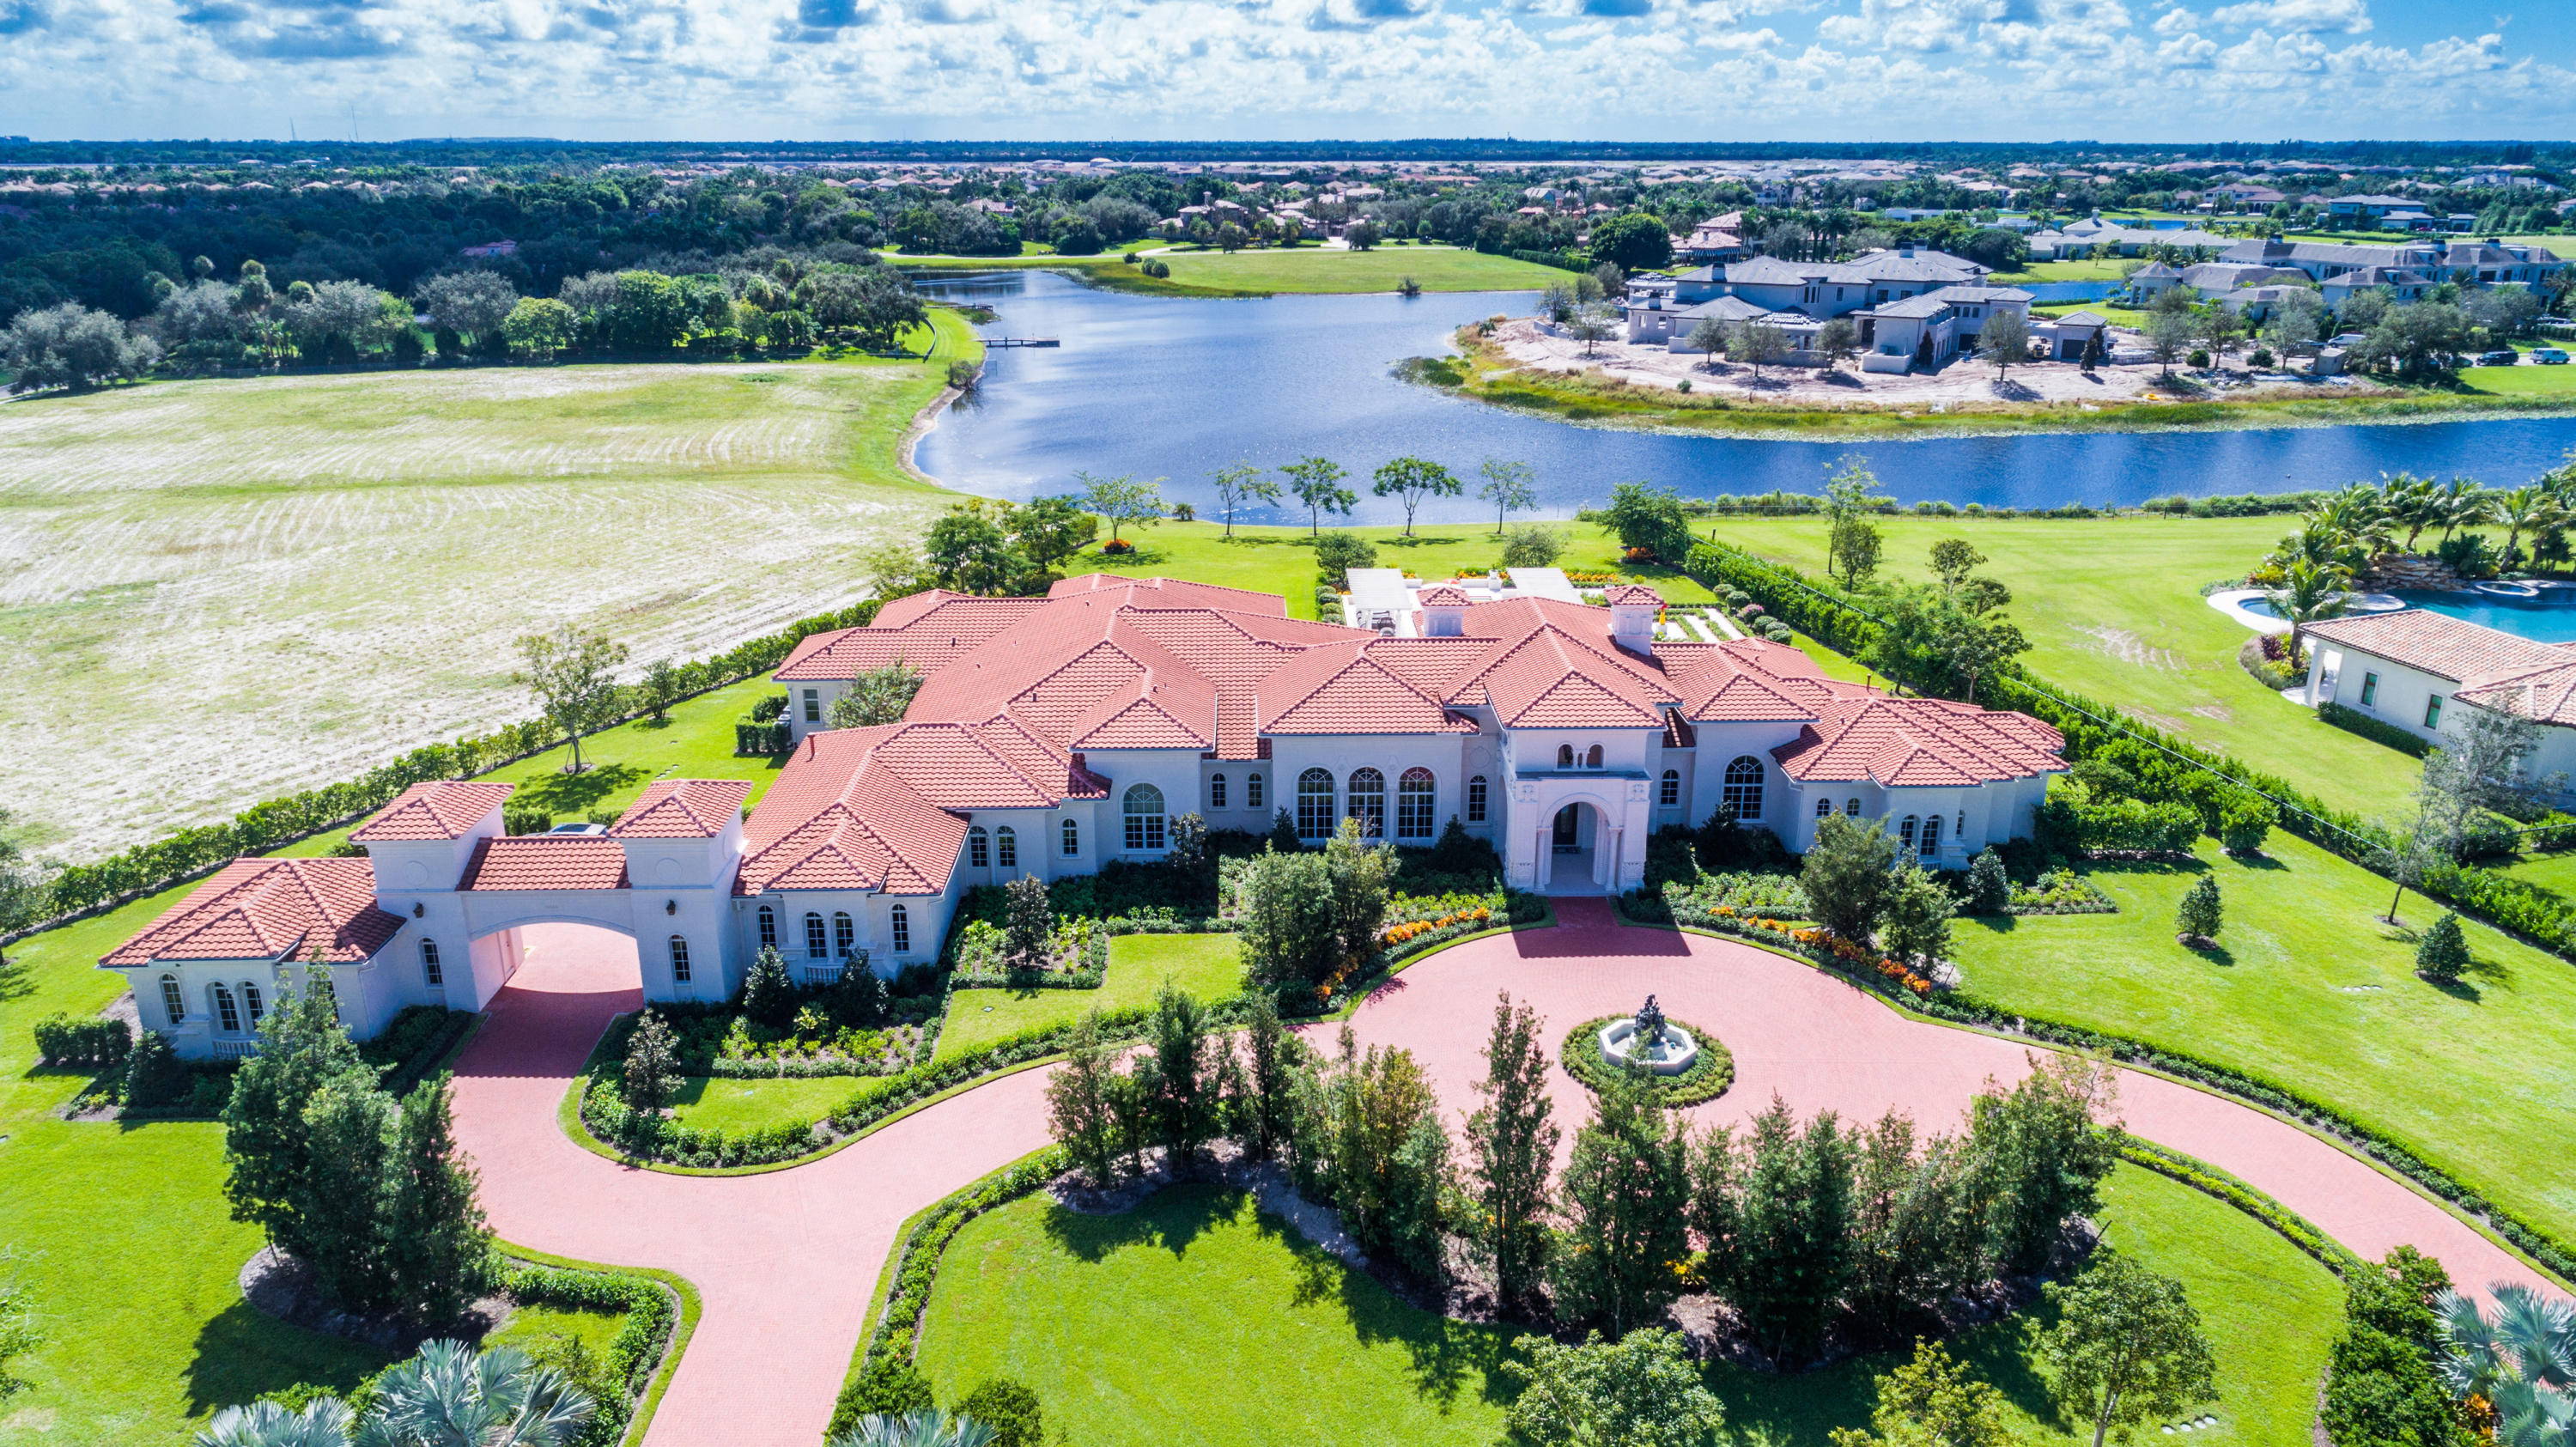 16155 Quiet Vista Circle, Delray Beach, Florida 33446, 6 Bedrooms Bedrooms, ,7.2 BathroomsBathrooms,Single Family,For Sale,Stone Creek Ranch,Quiet Vista,RX-10477069